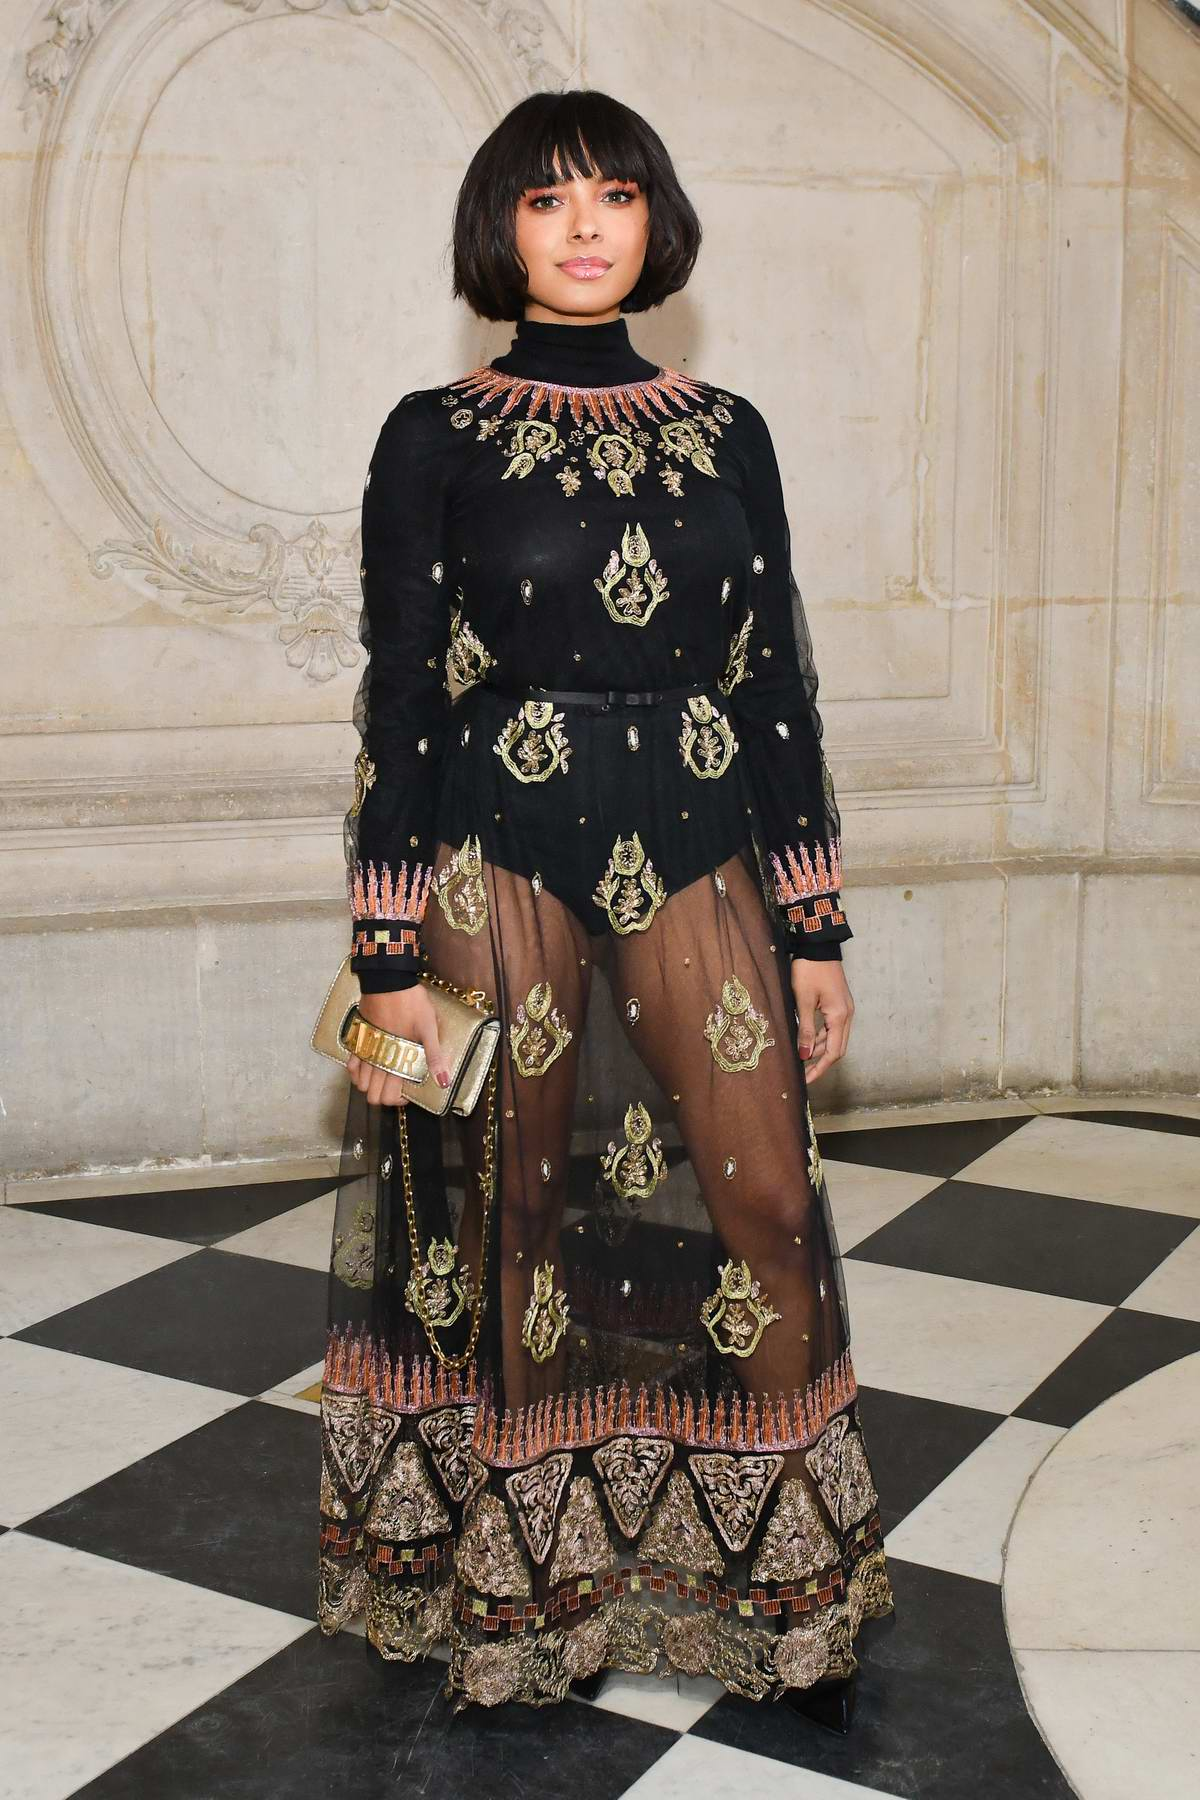 Kat Graham attends the Christian Dior Haute Couture Spring/Summer 2019 Show during Paris Fashion Week in Paris, France